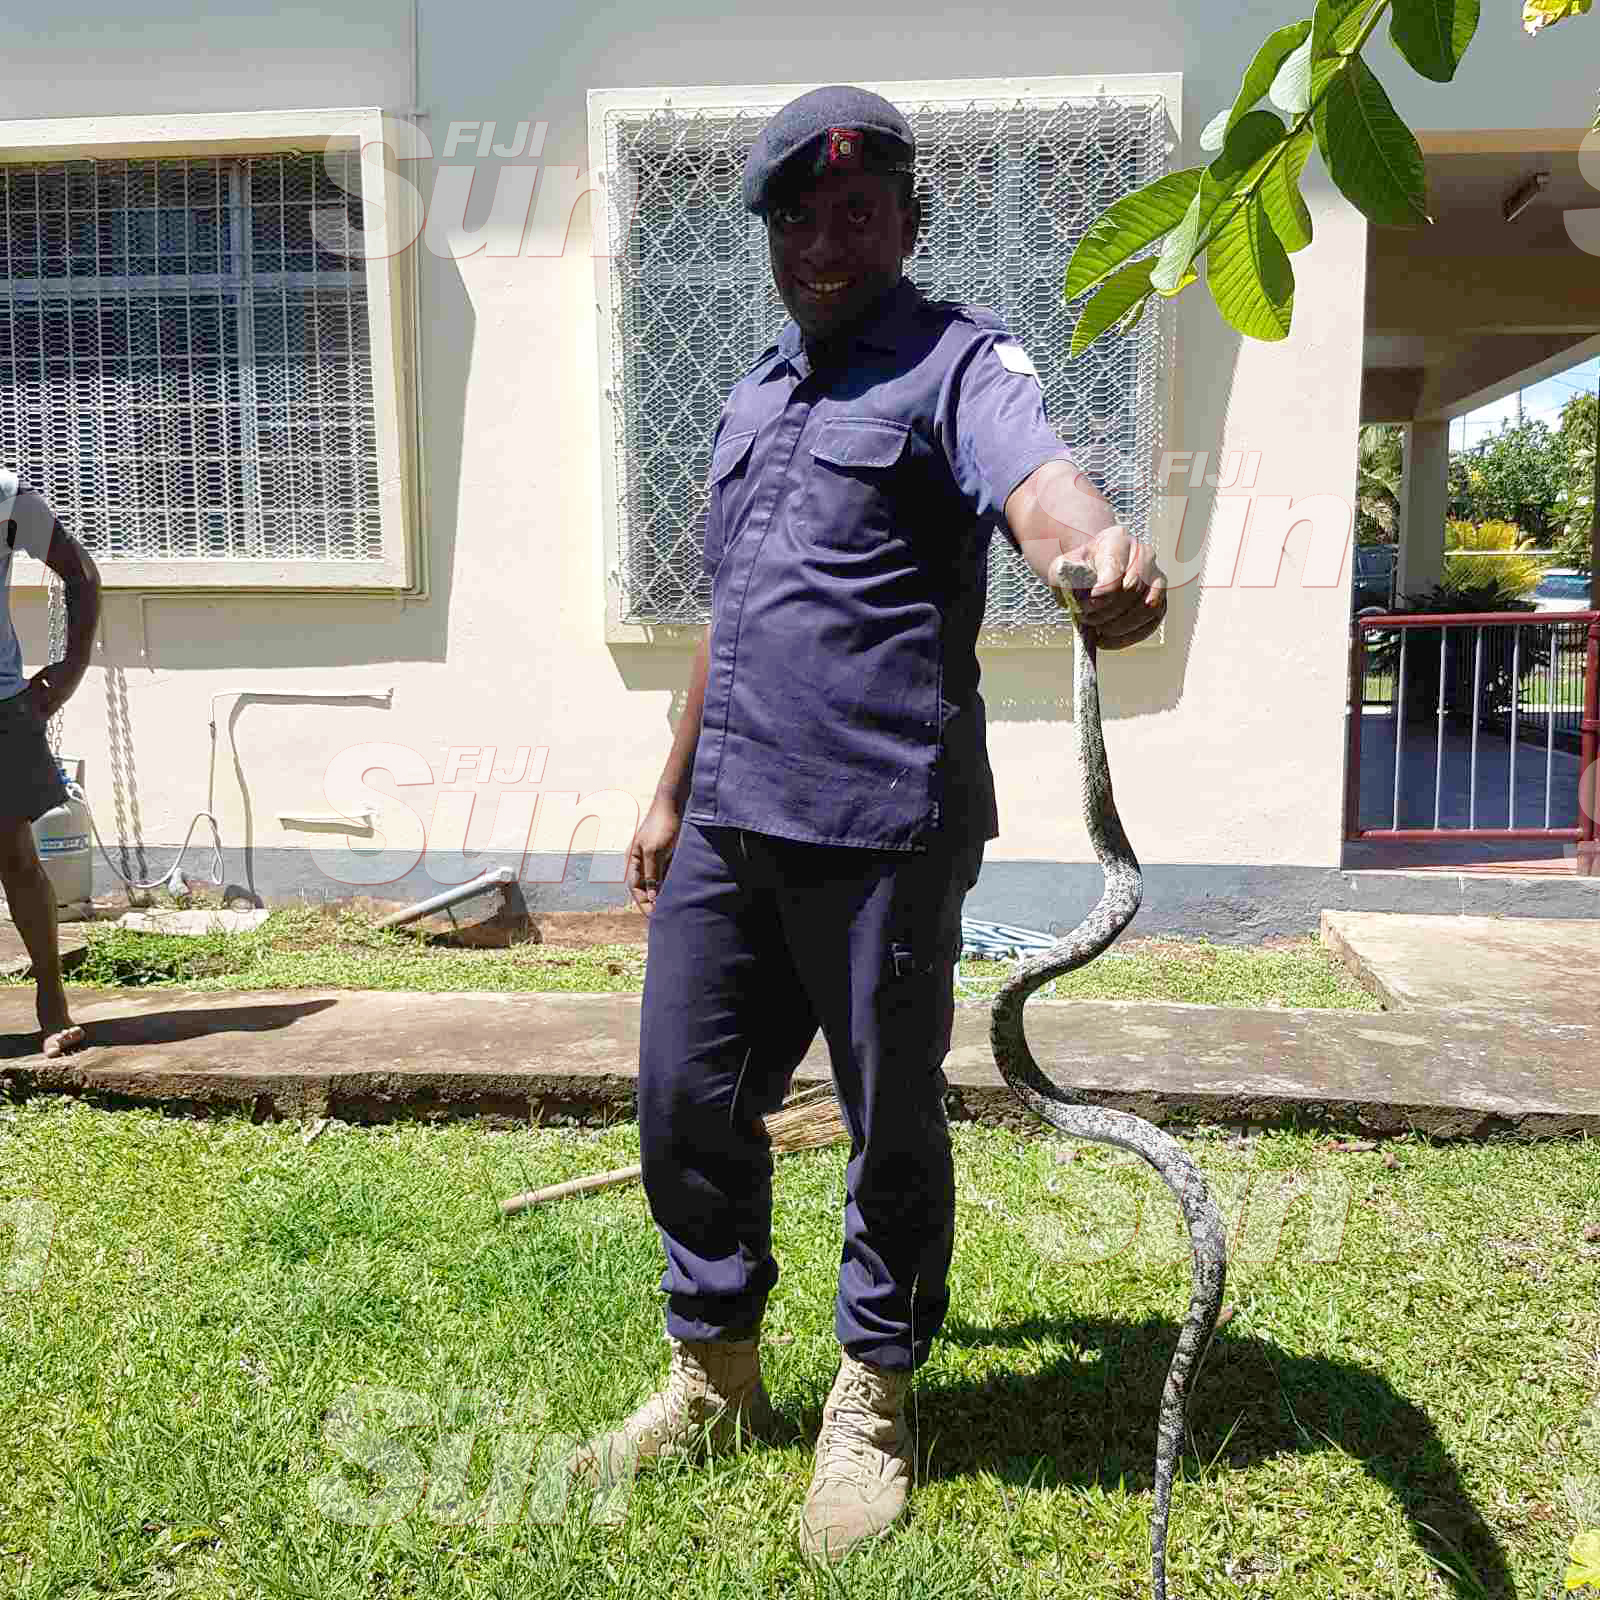 A Police officer holding the snake which was spotted at a home in Simla, Lautoka on October 20, 2019. Photo: Nicolette Chambers